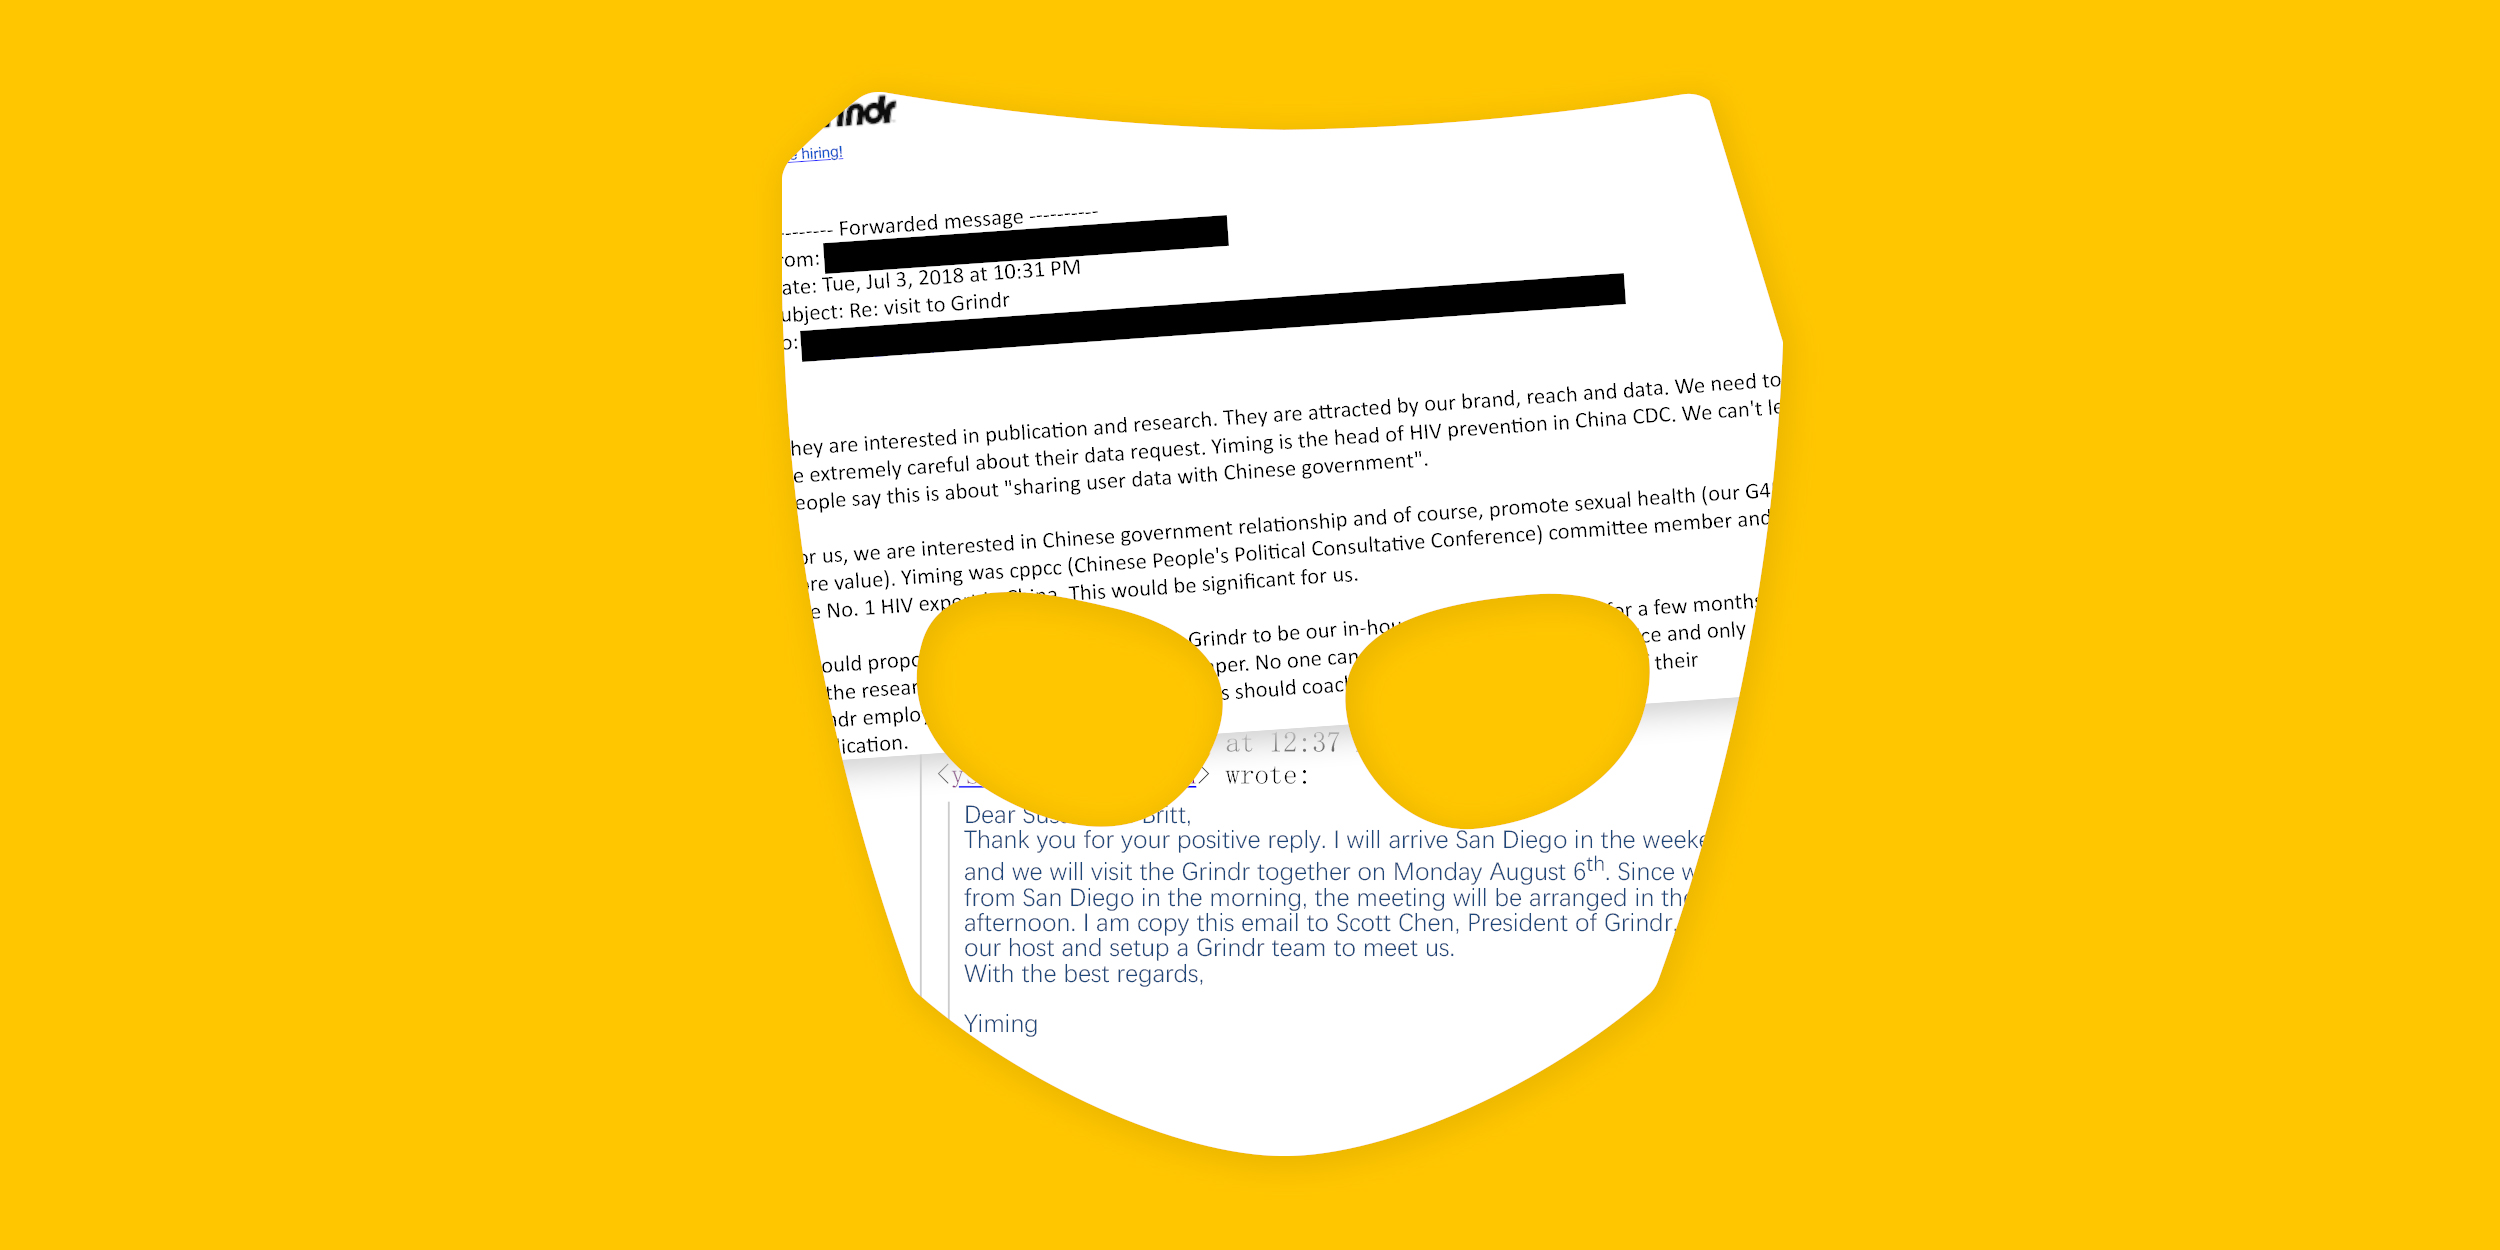 Grindr emails reveal concern that China wanted to access user data